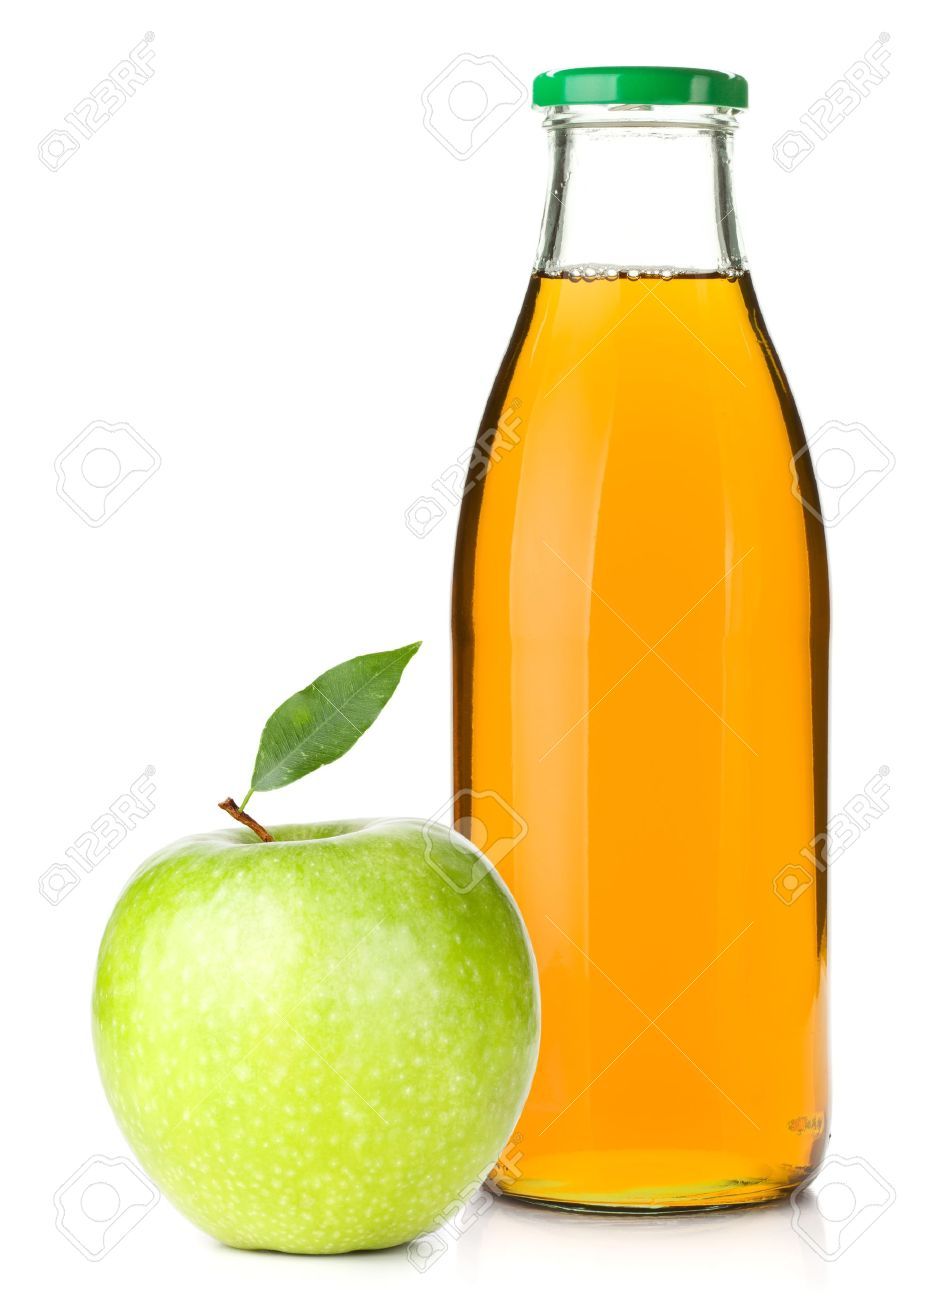 Apple White With Glasses Apple Juice in a Glass Bottle